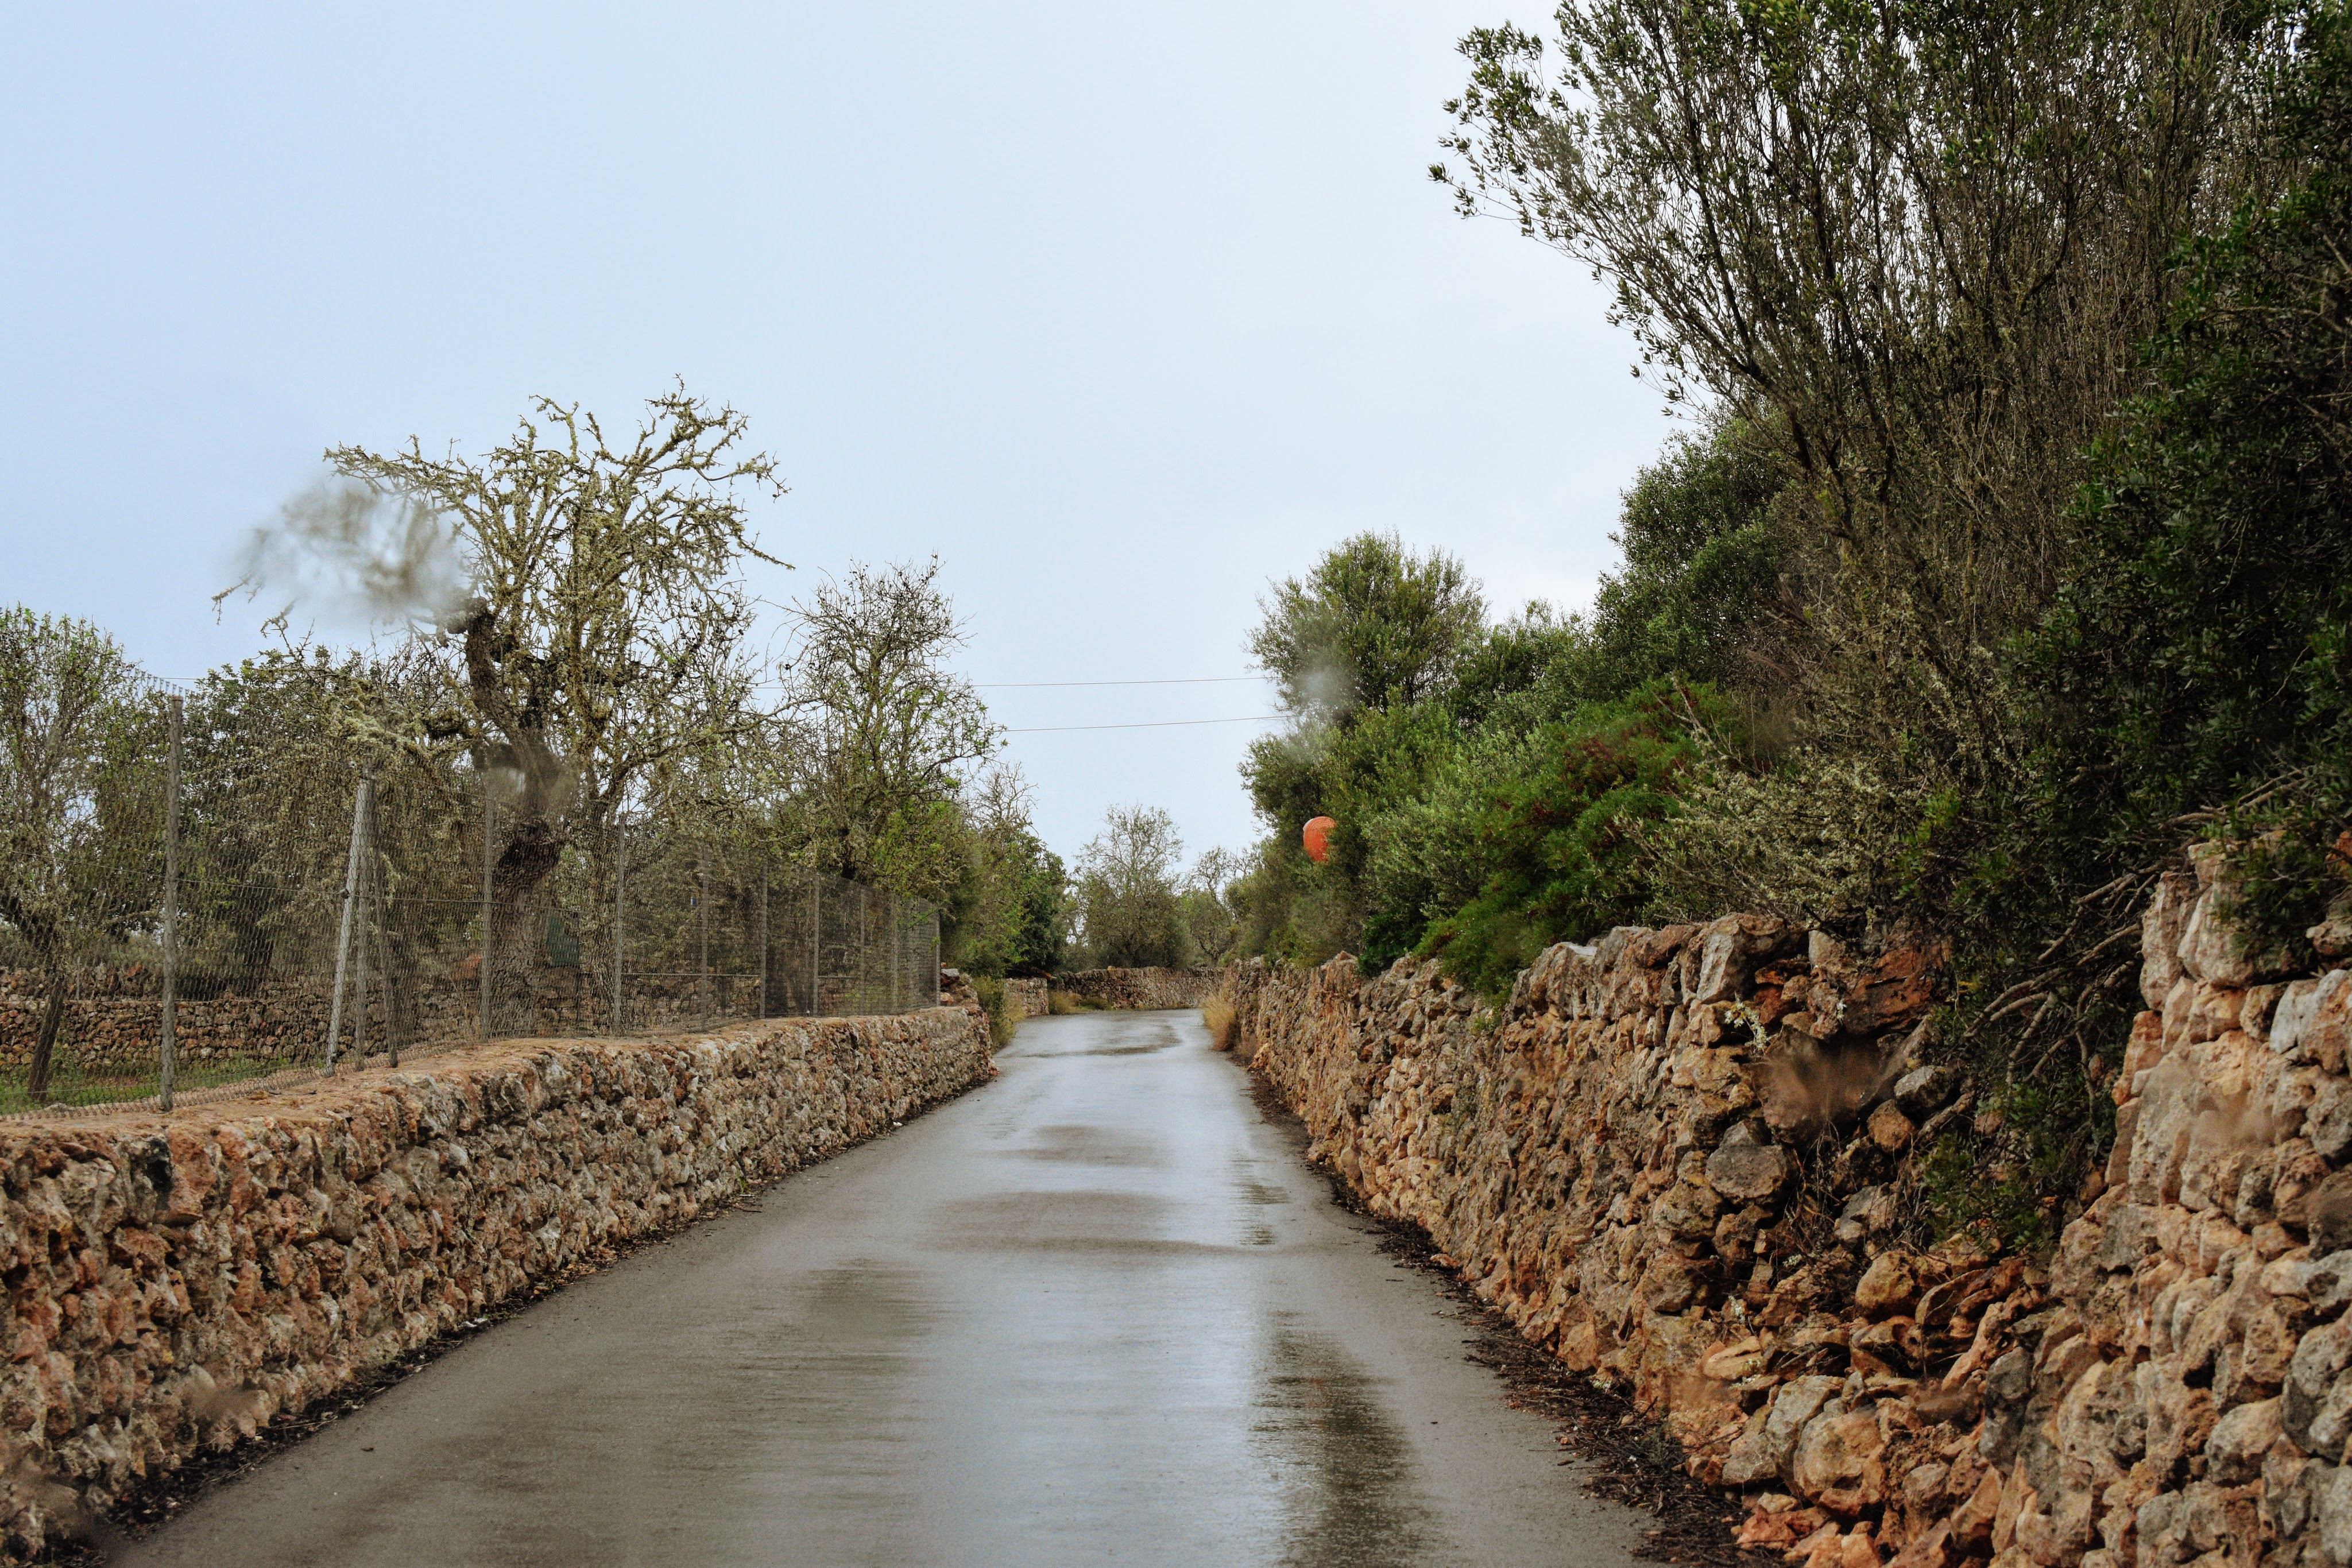 roads with rock fencing